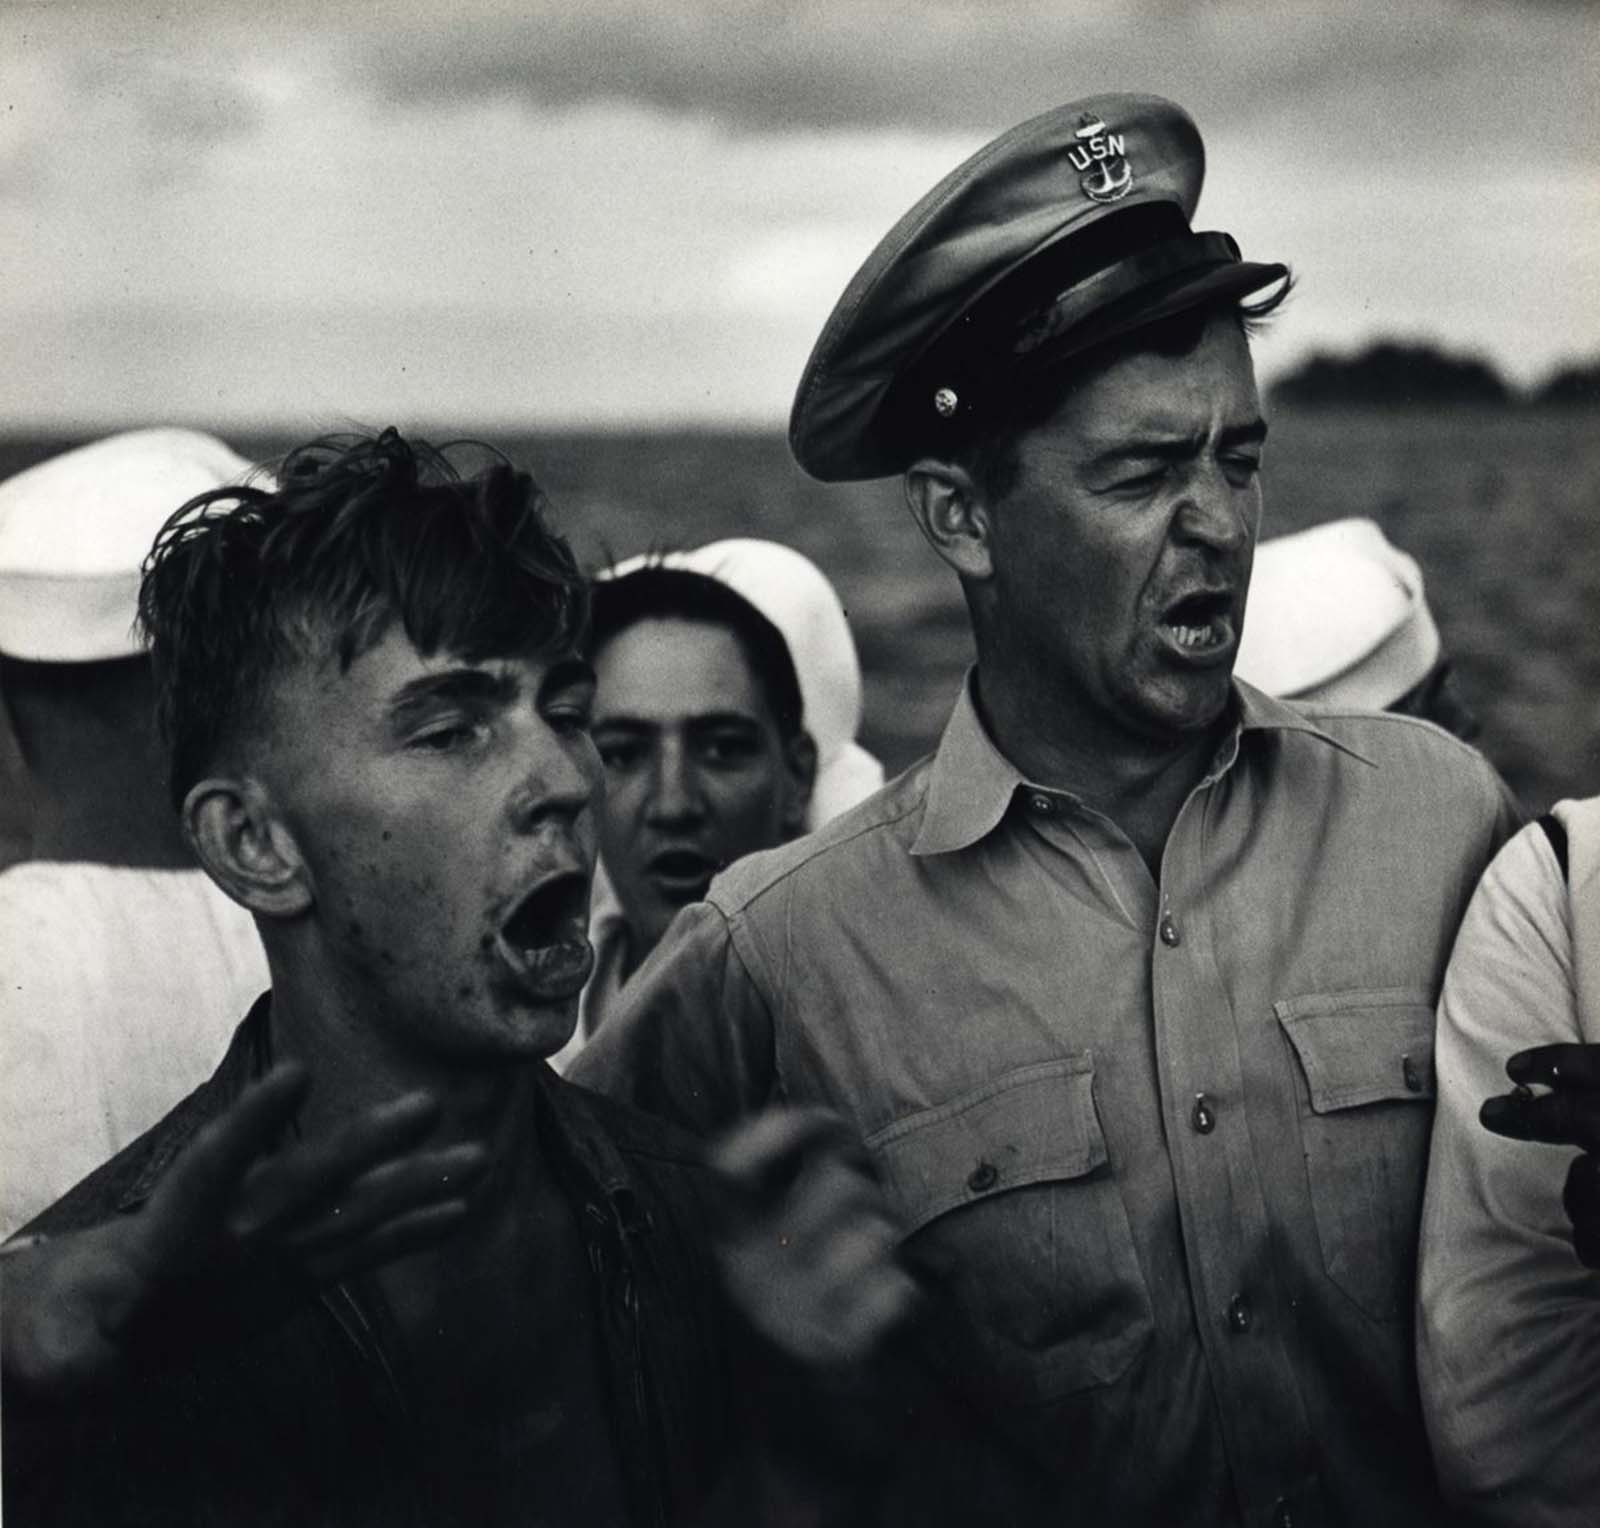 Too Much Beer, c. 1943.